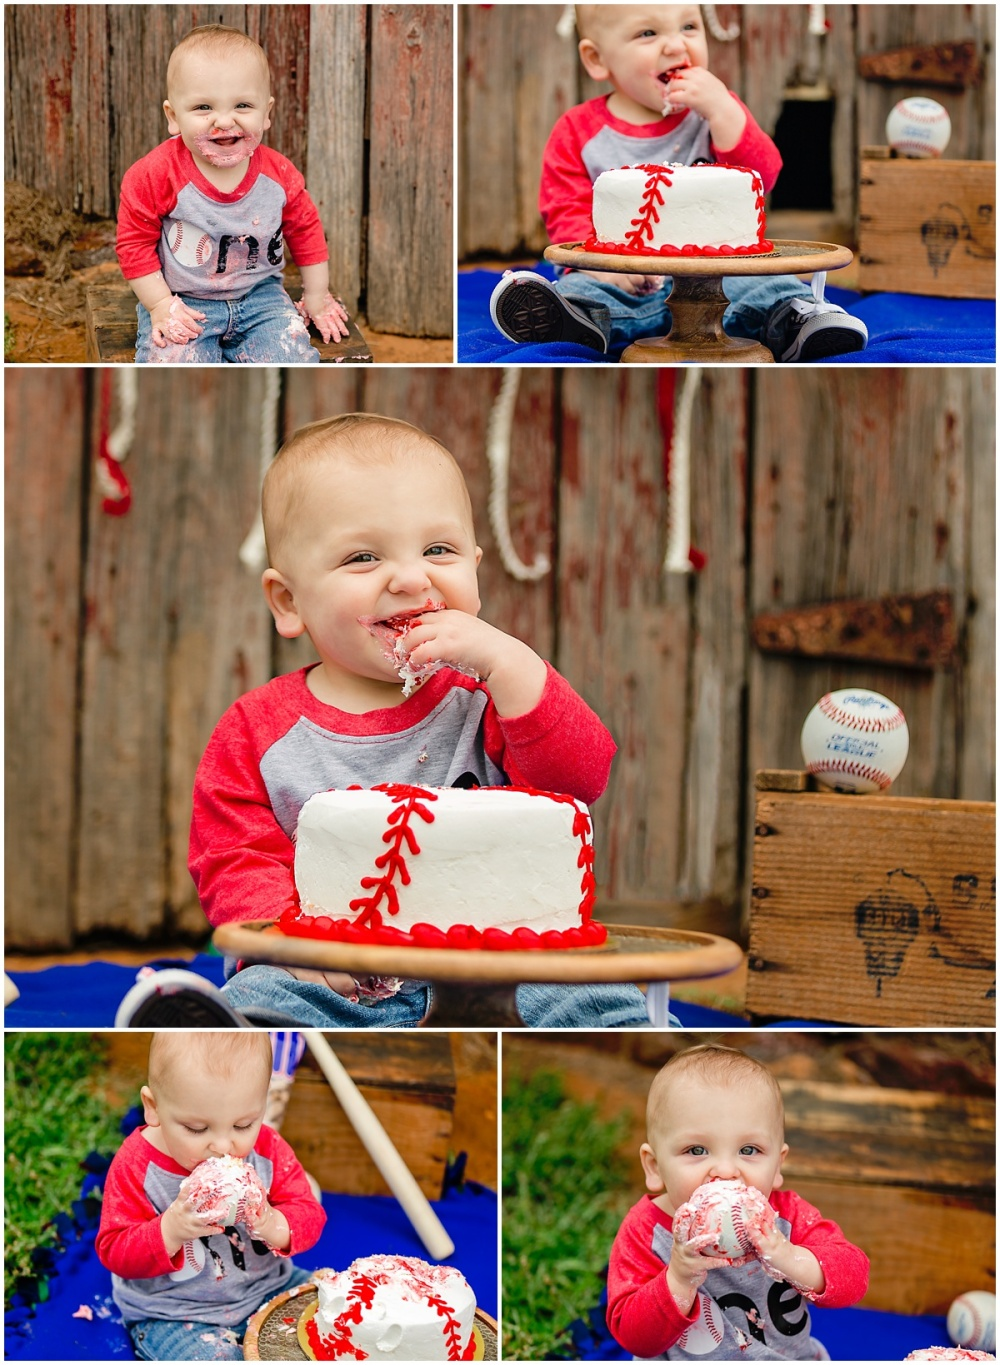 Cake-Smash-Baseball-Theme-First-Birthday-Carly-Barton-Photography_0006.jpg